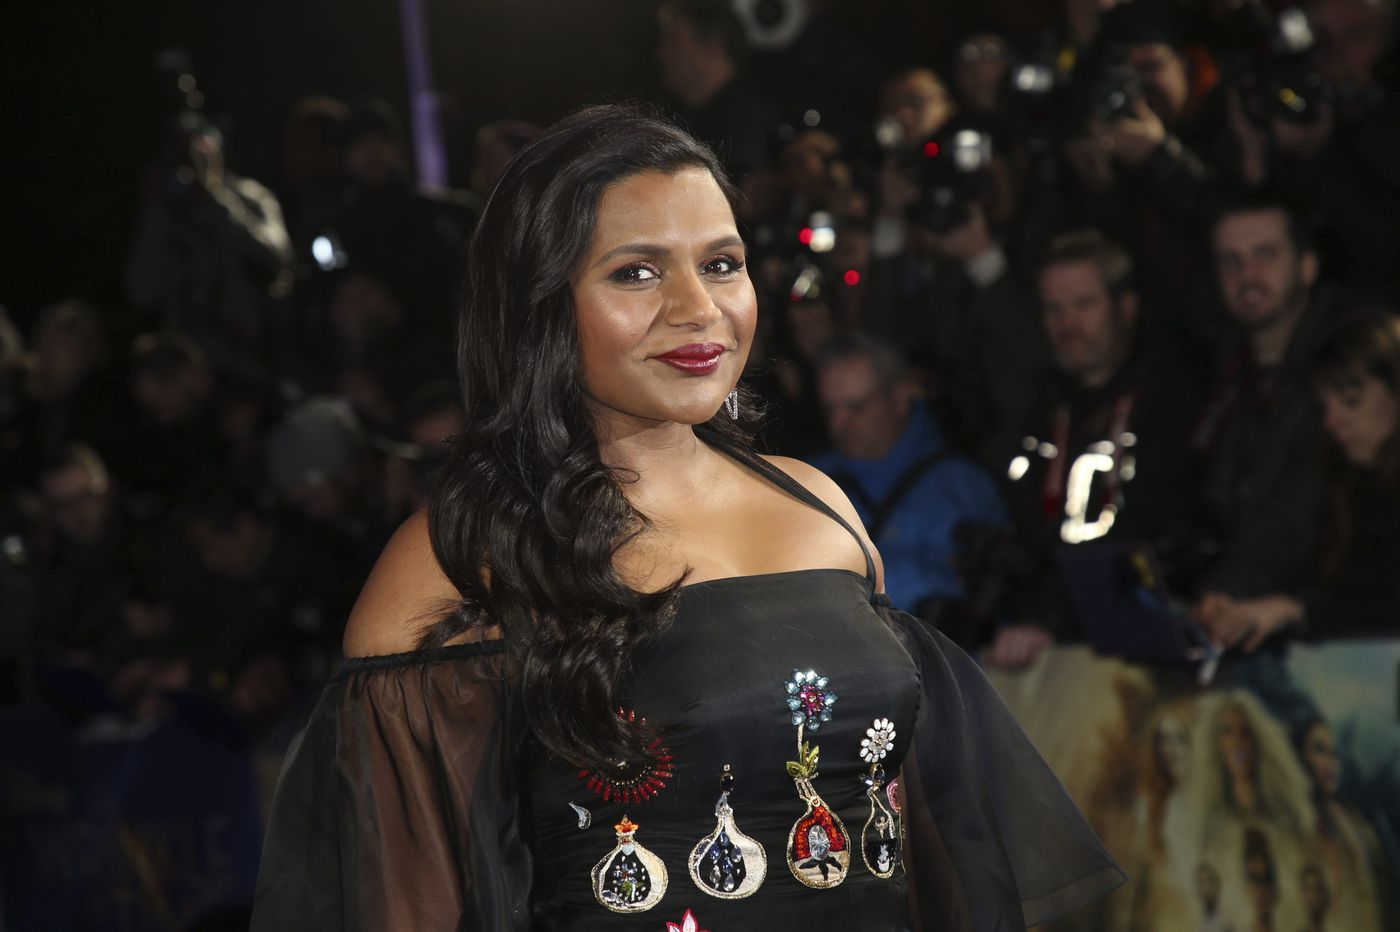 Will Mindy Kaling be on the next season of 'It's Always Sunny'?